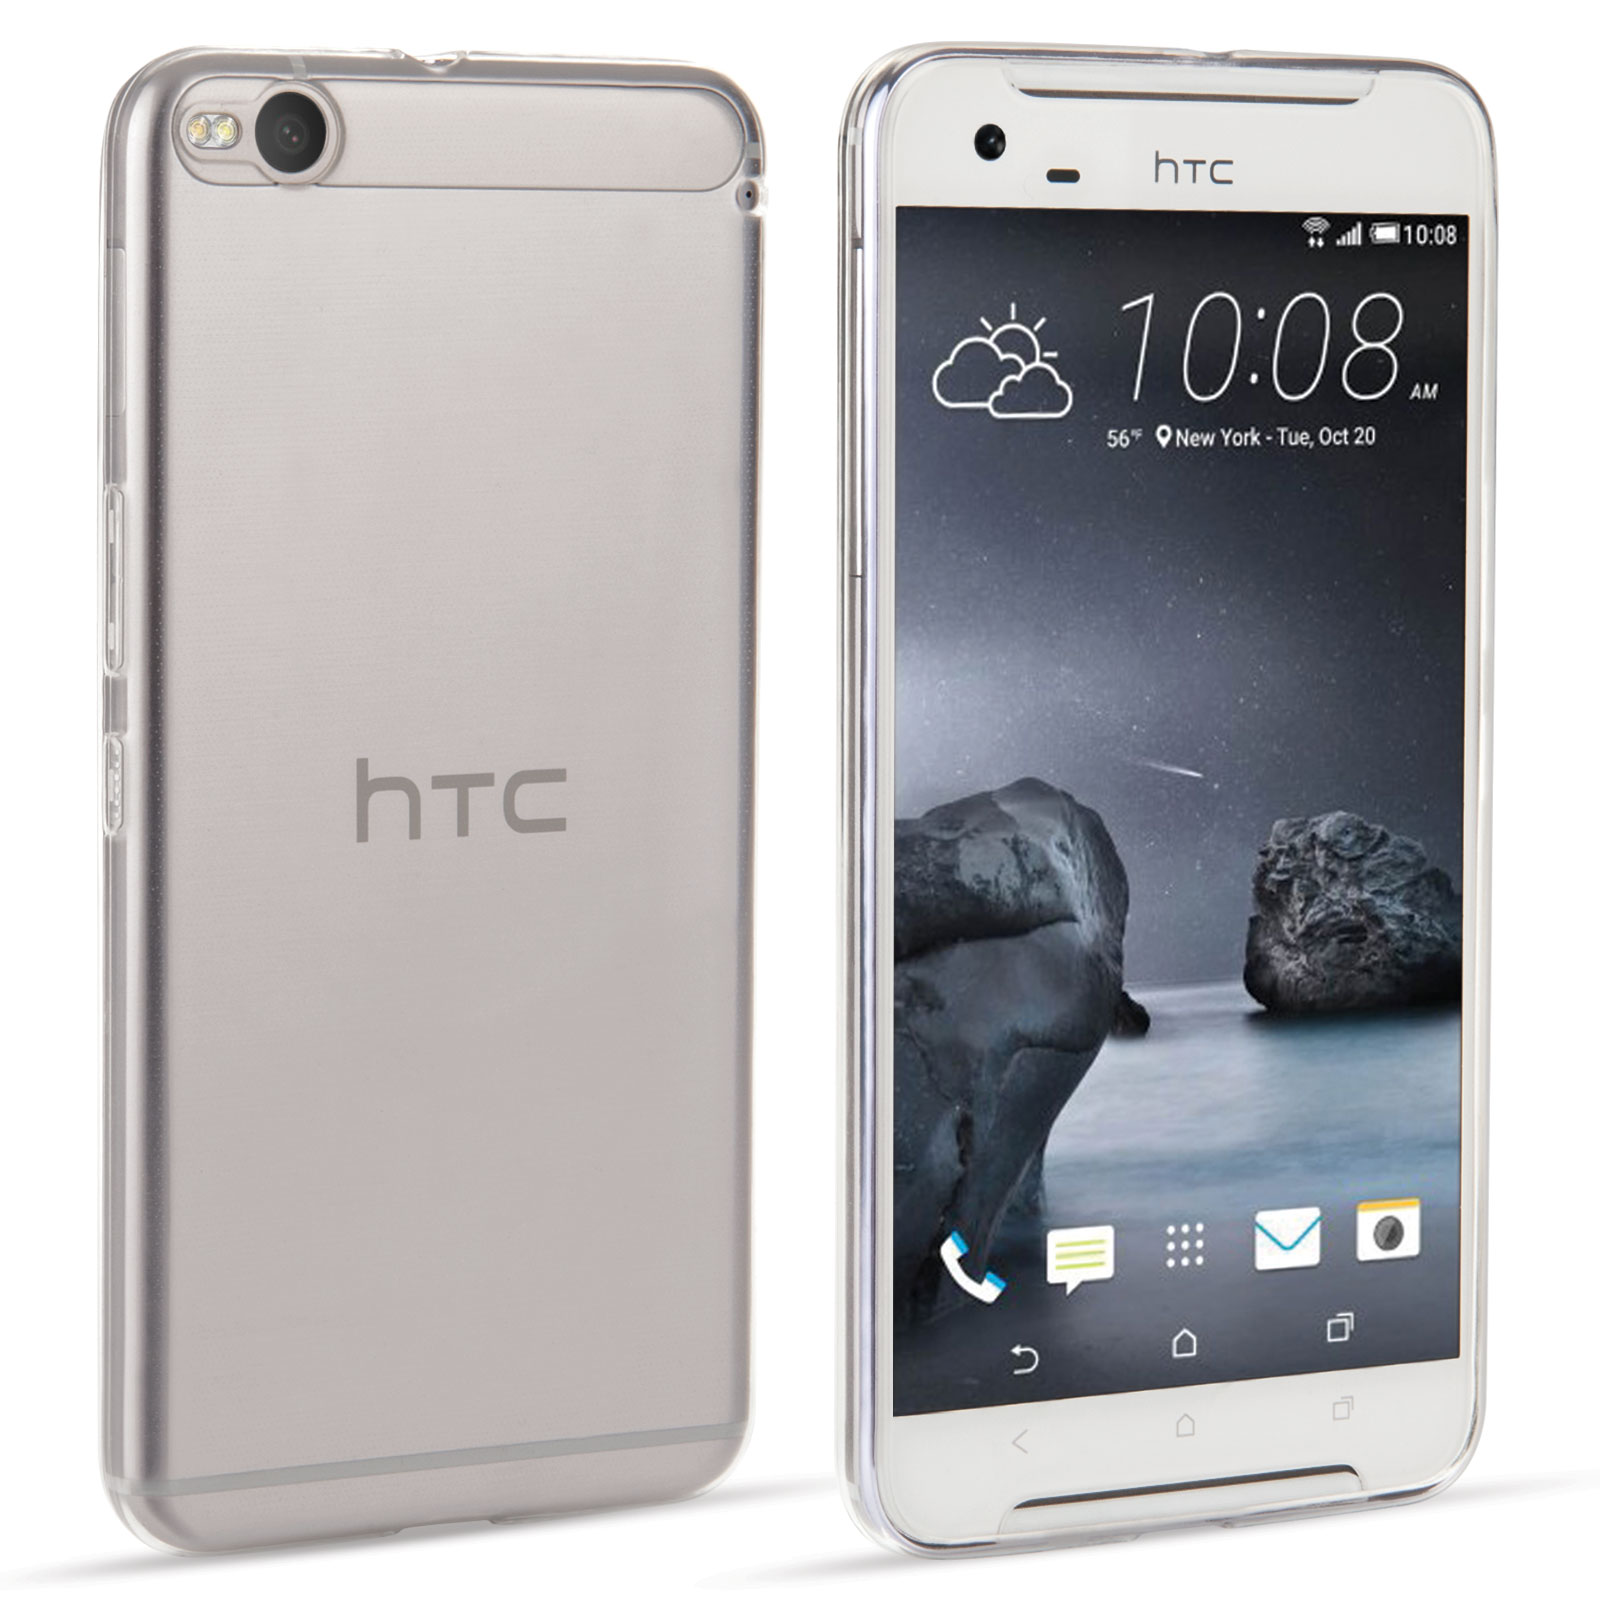 Yousave Accessories HTC One X9 0.6mm Ultra-Thin Clear Gel Case